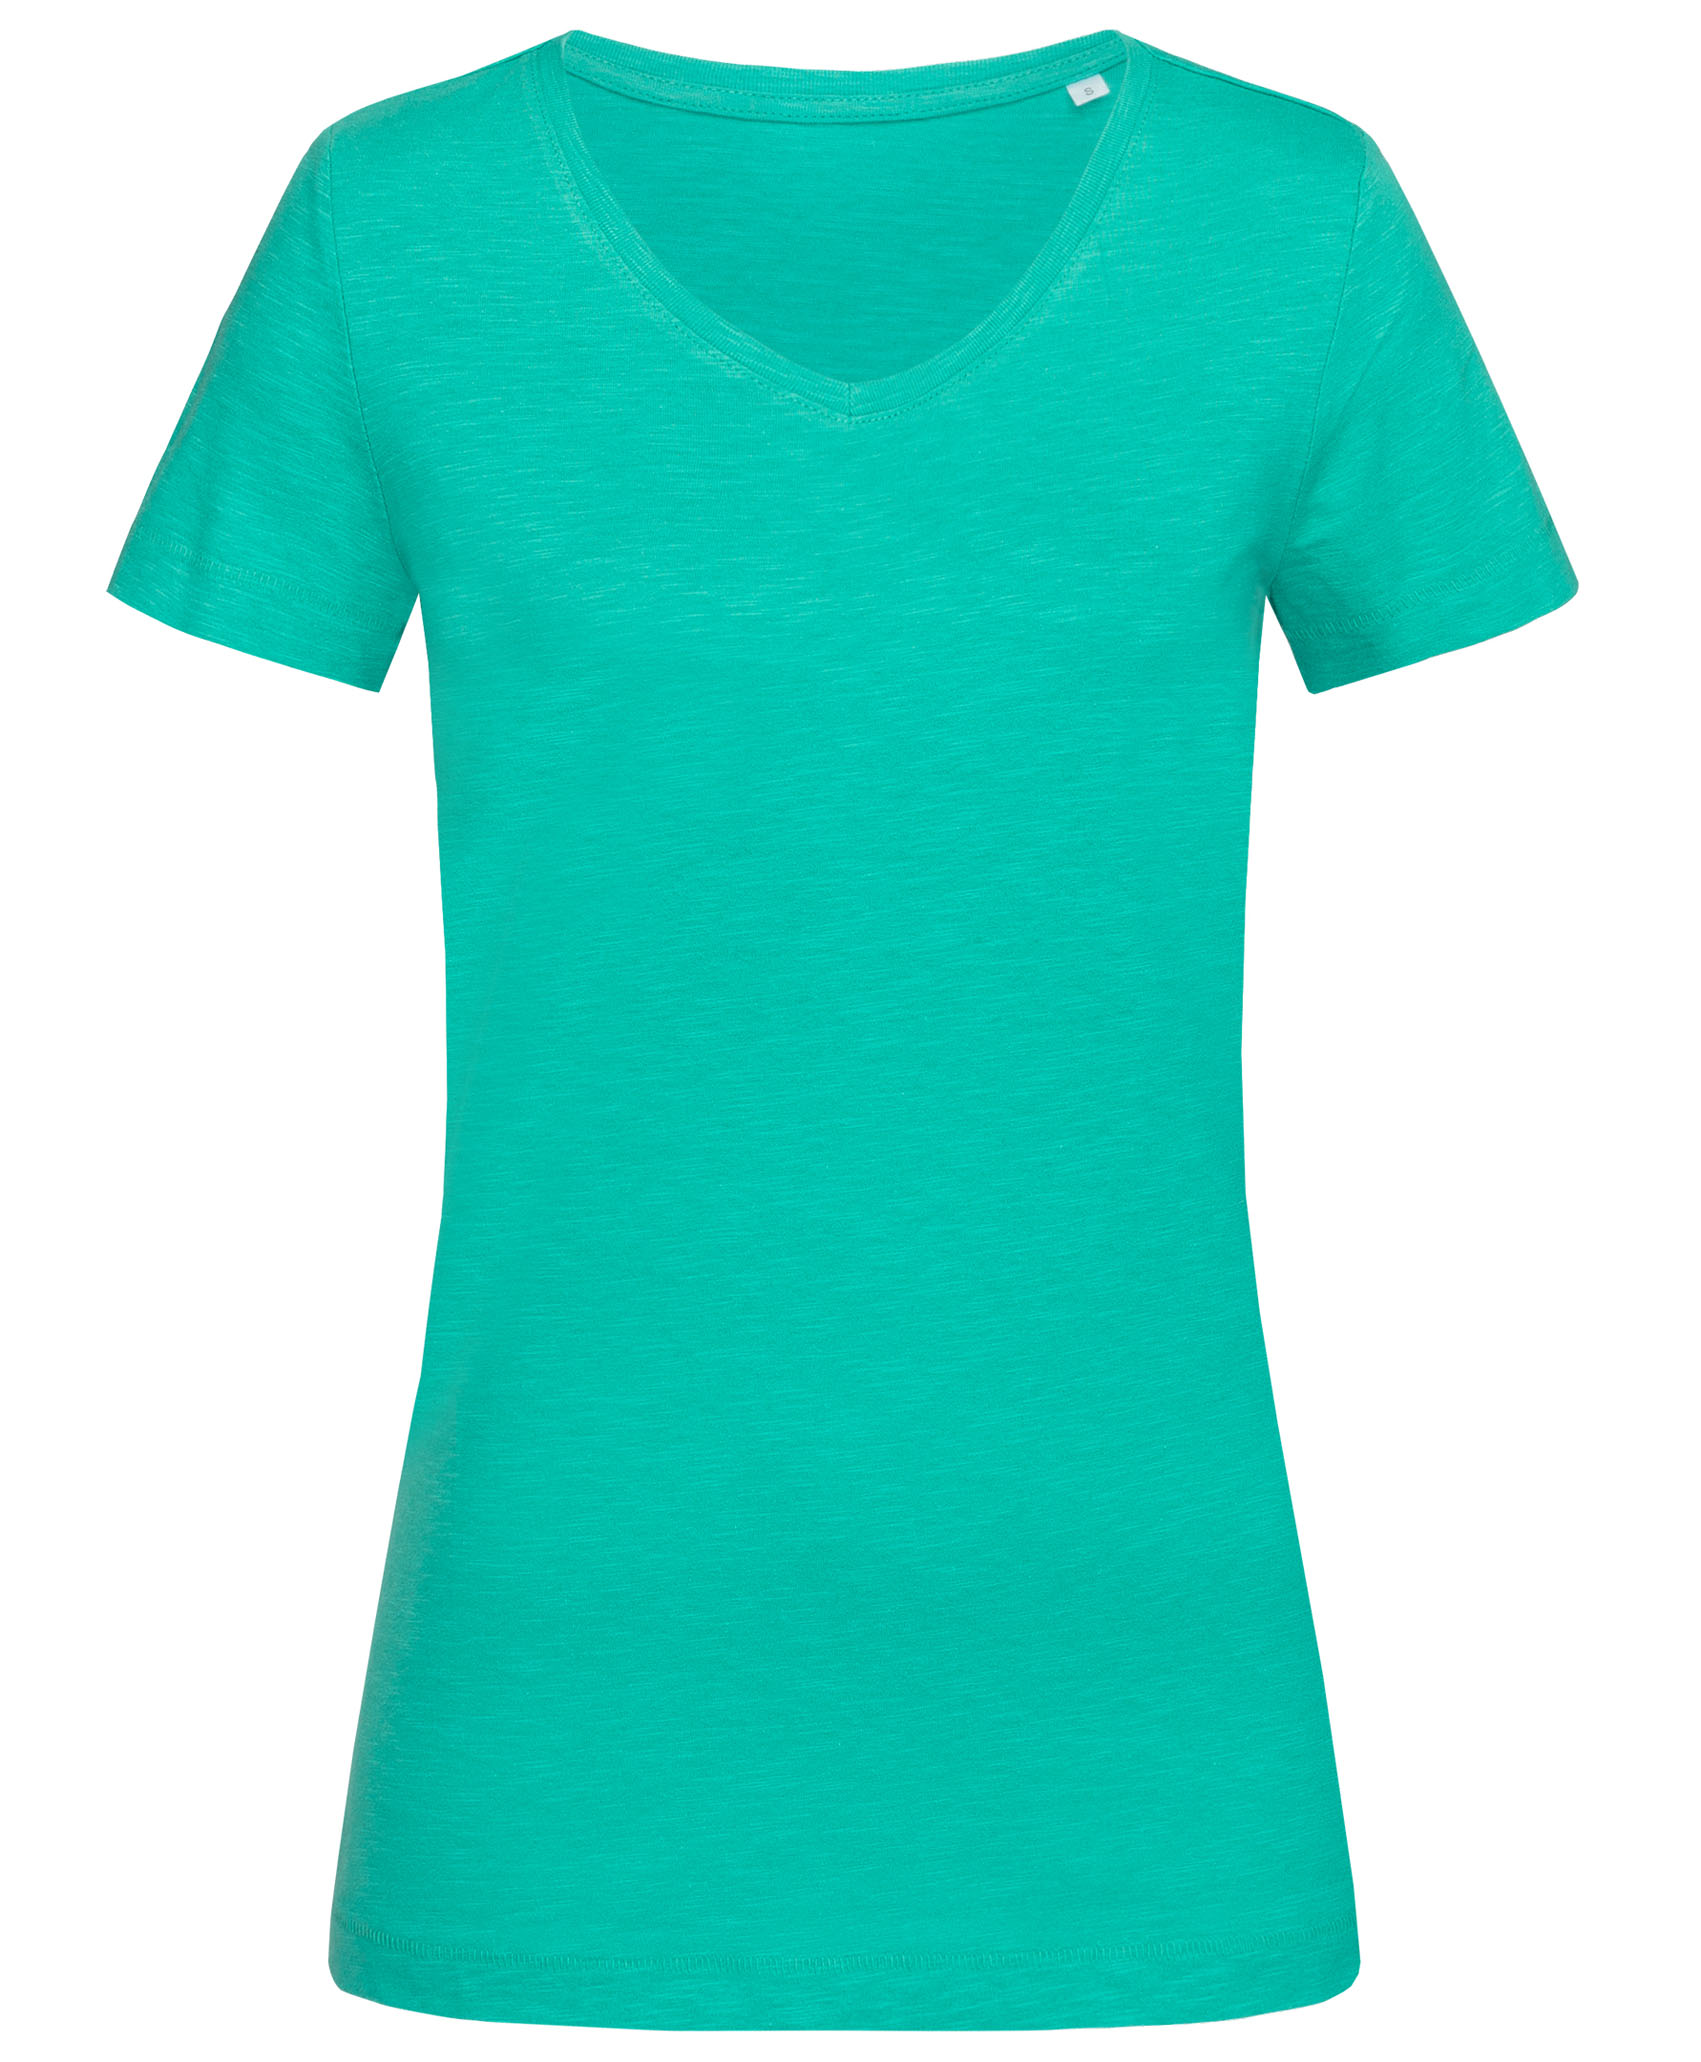 Stedman T-shirt V-neck Sharon SS for her Bahama Green S